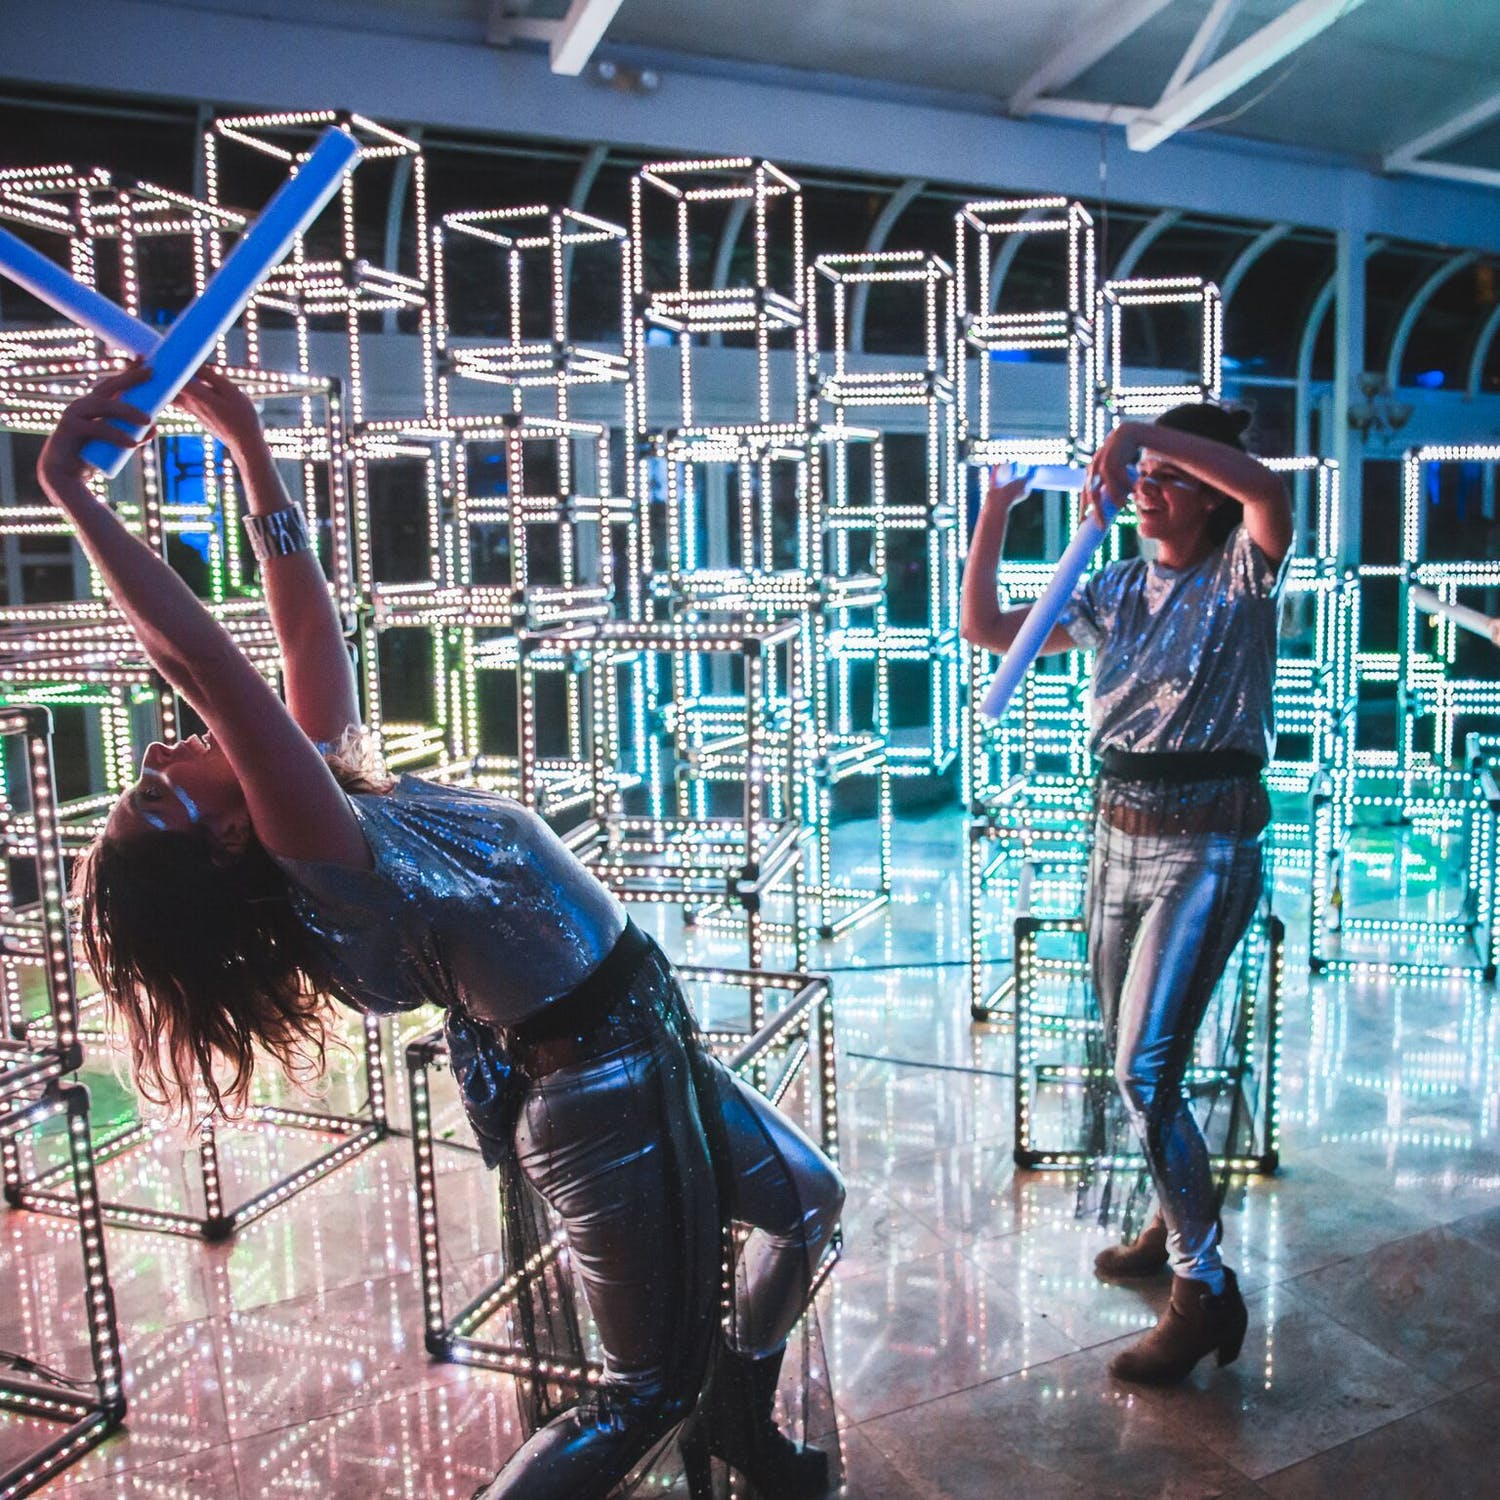 Pillars of cubes stacked together are in the background of 2 people dancing at Spotify holiday party | PartySlate